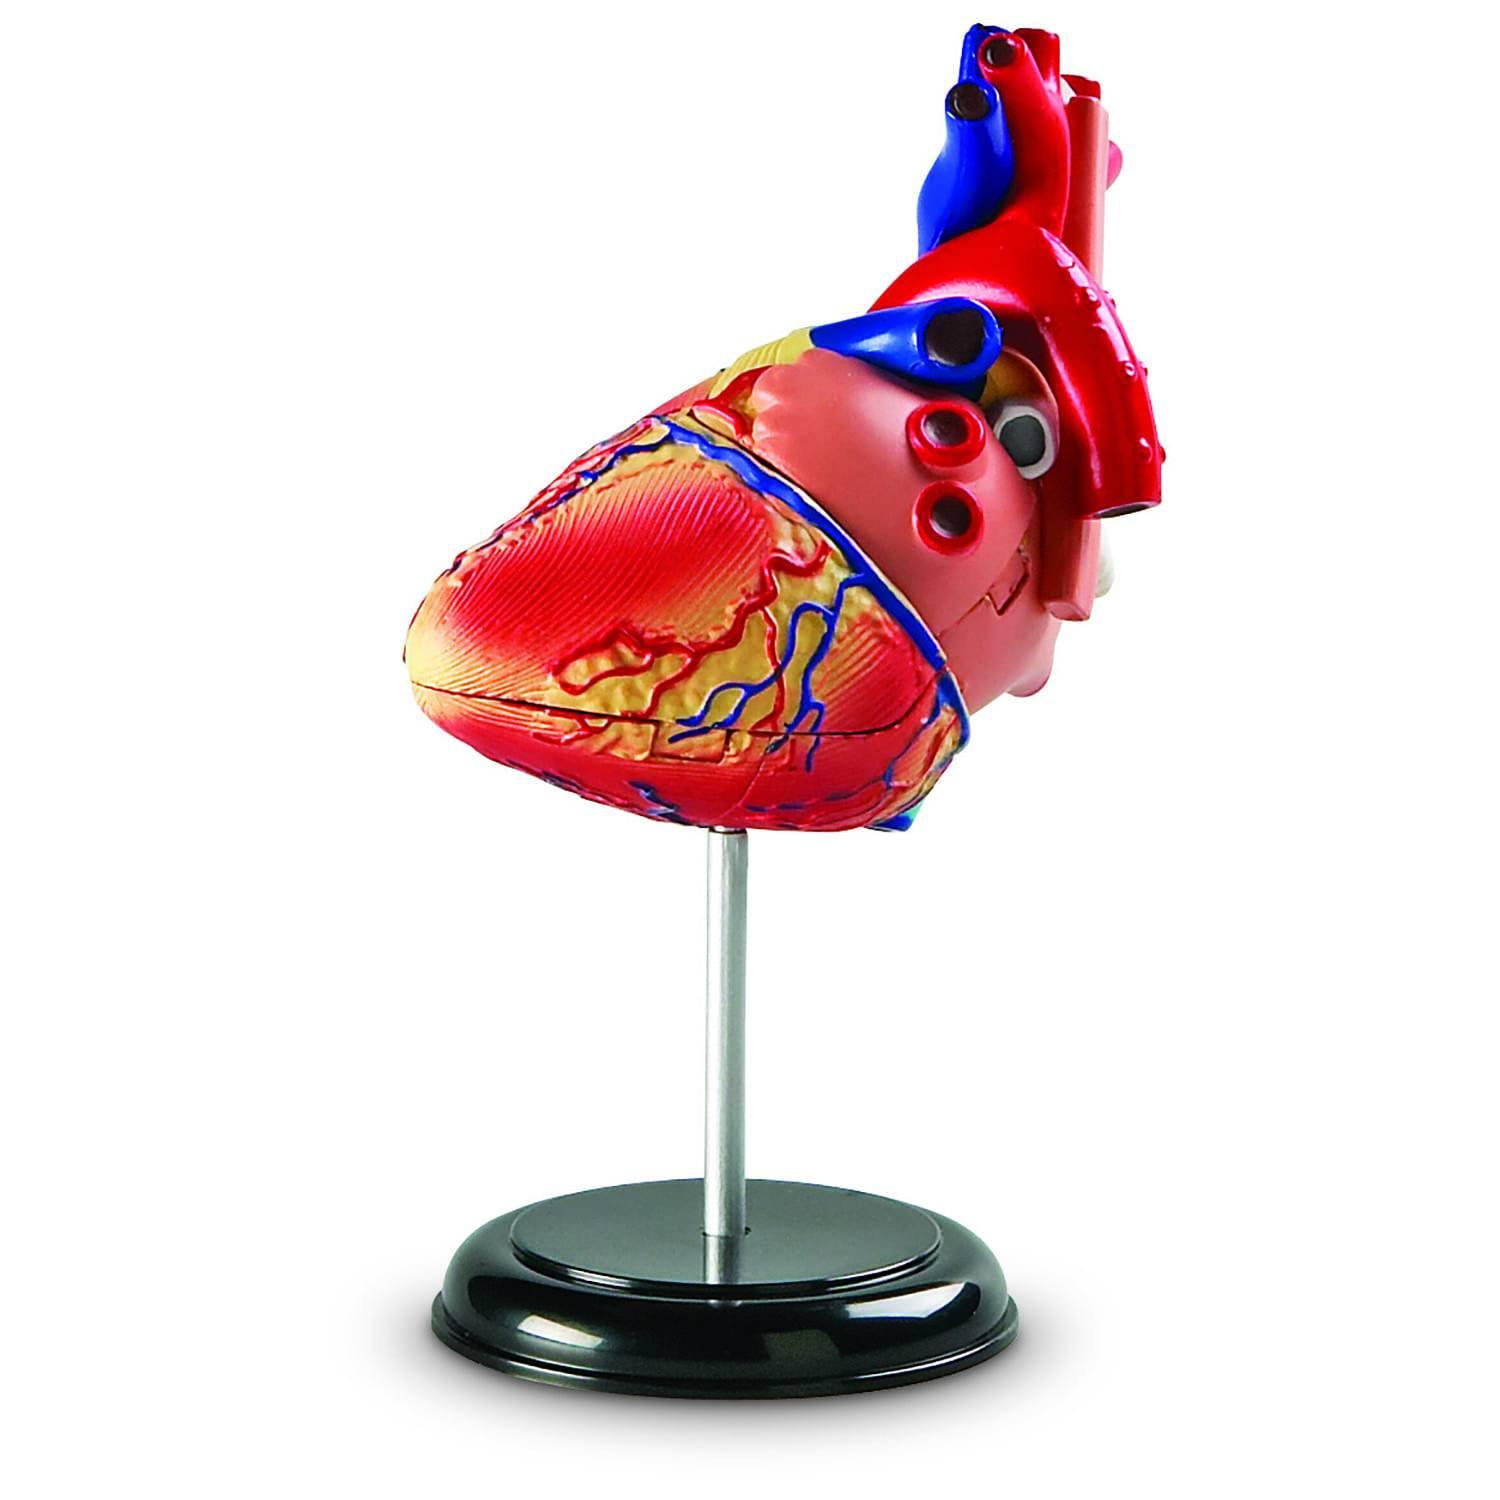 Heart Anatomy Model Kit 3